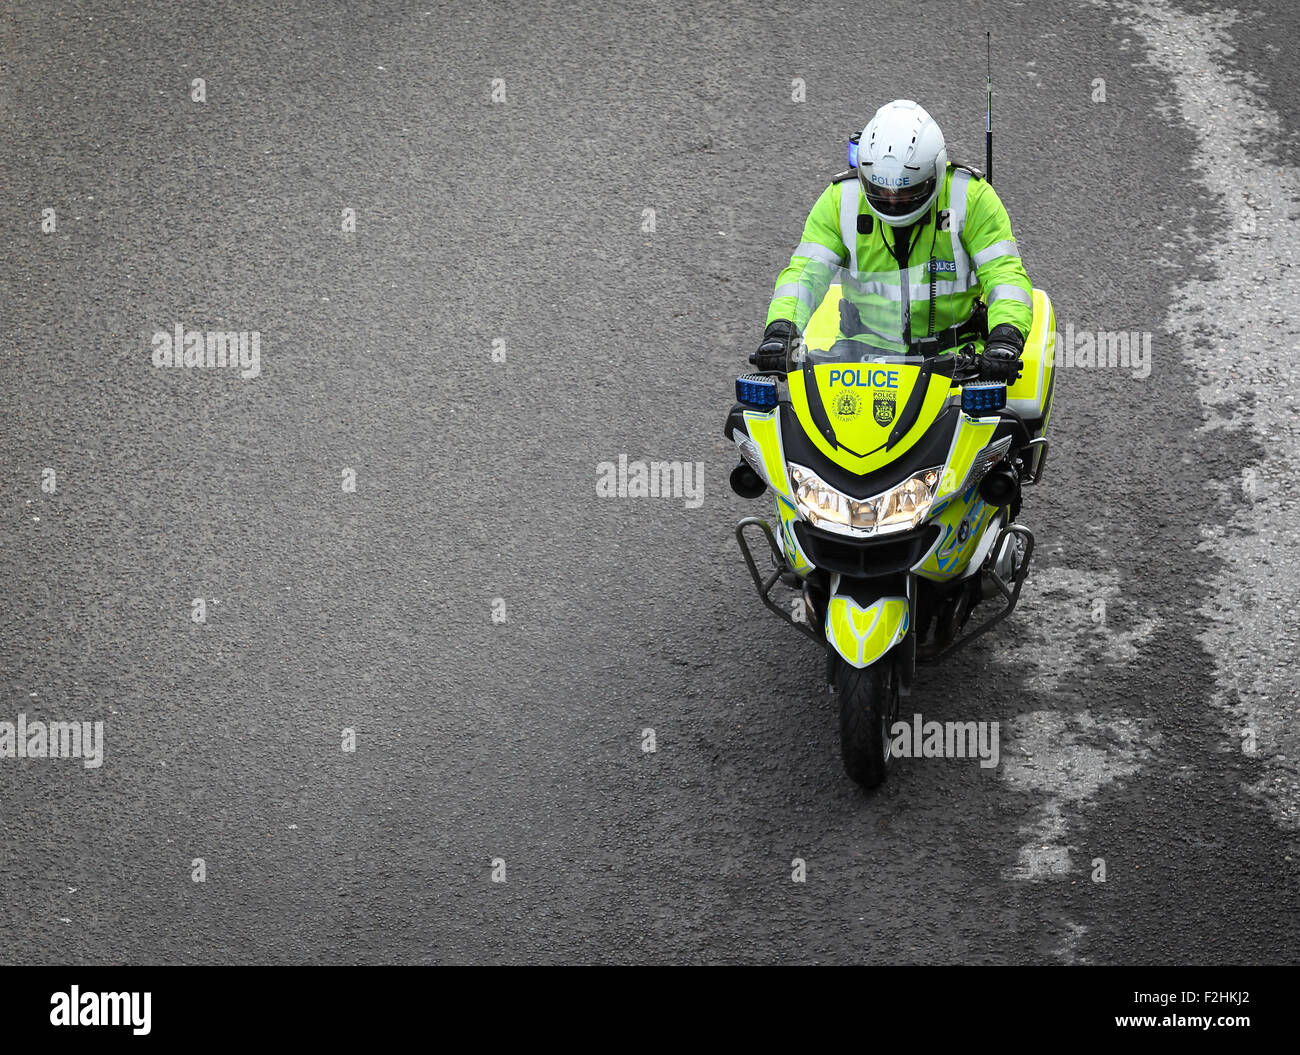 Police motorbike traffic officer UK - Stock Image